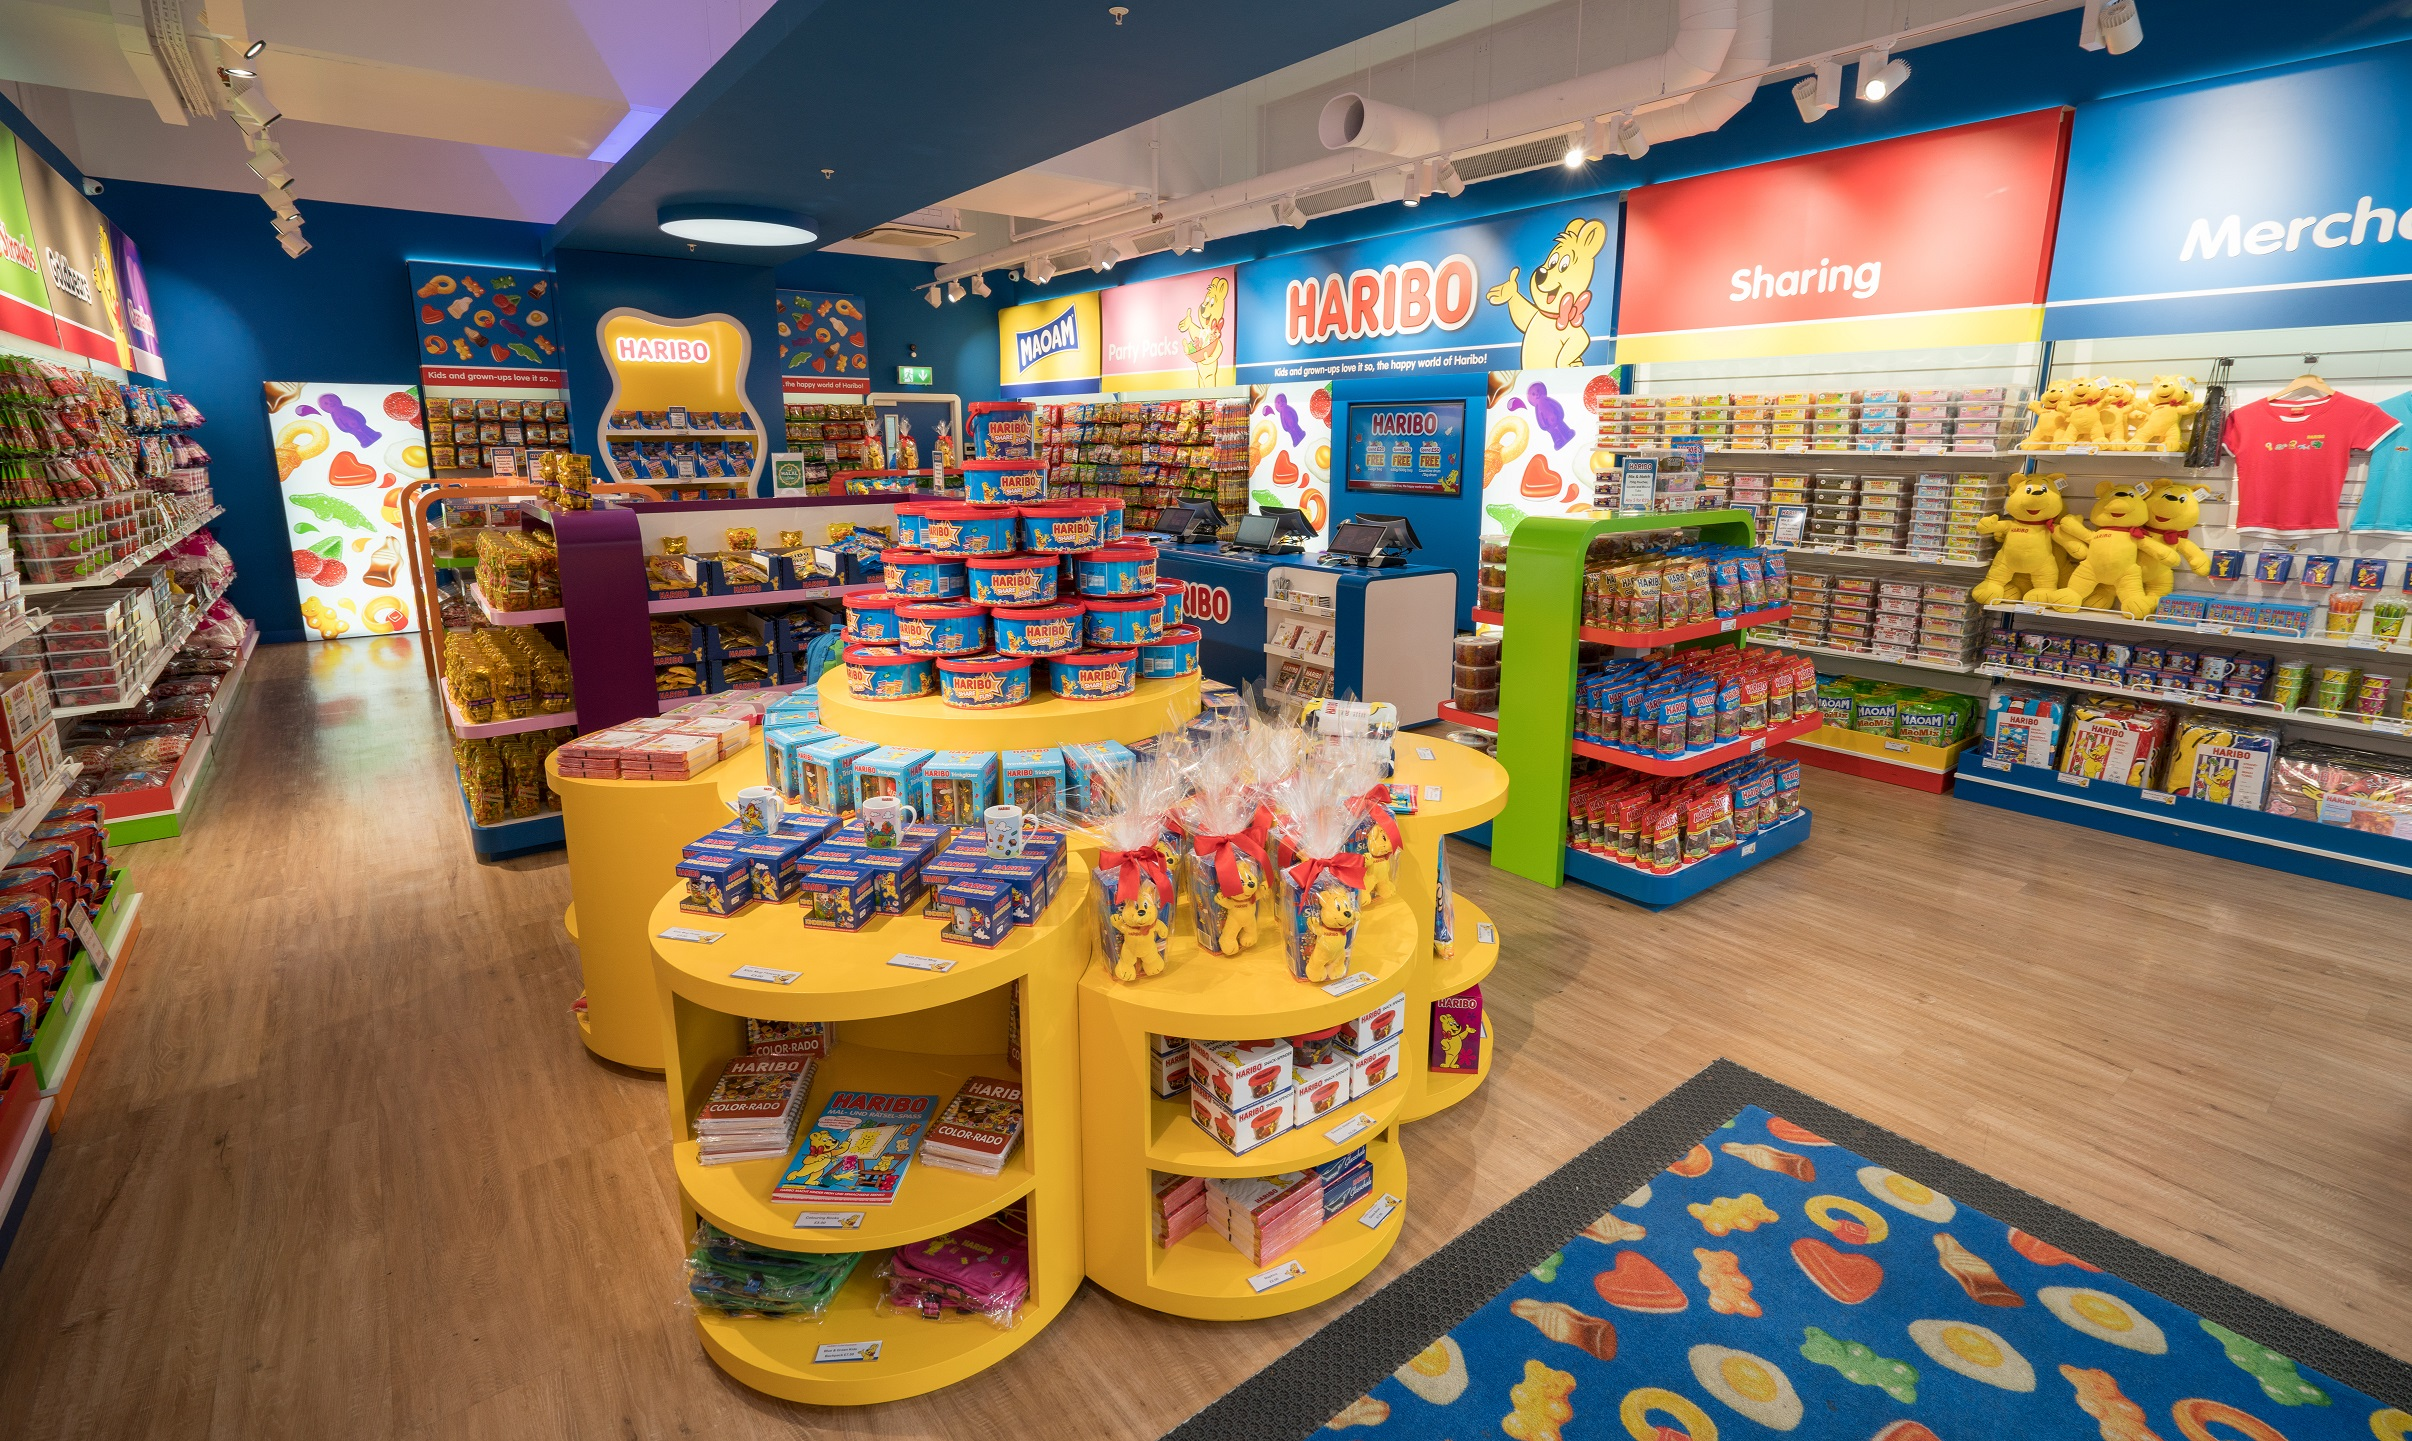 What the Haribo store will look like. Credit: Handout